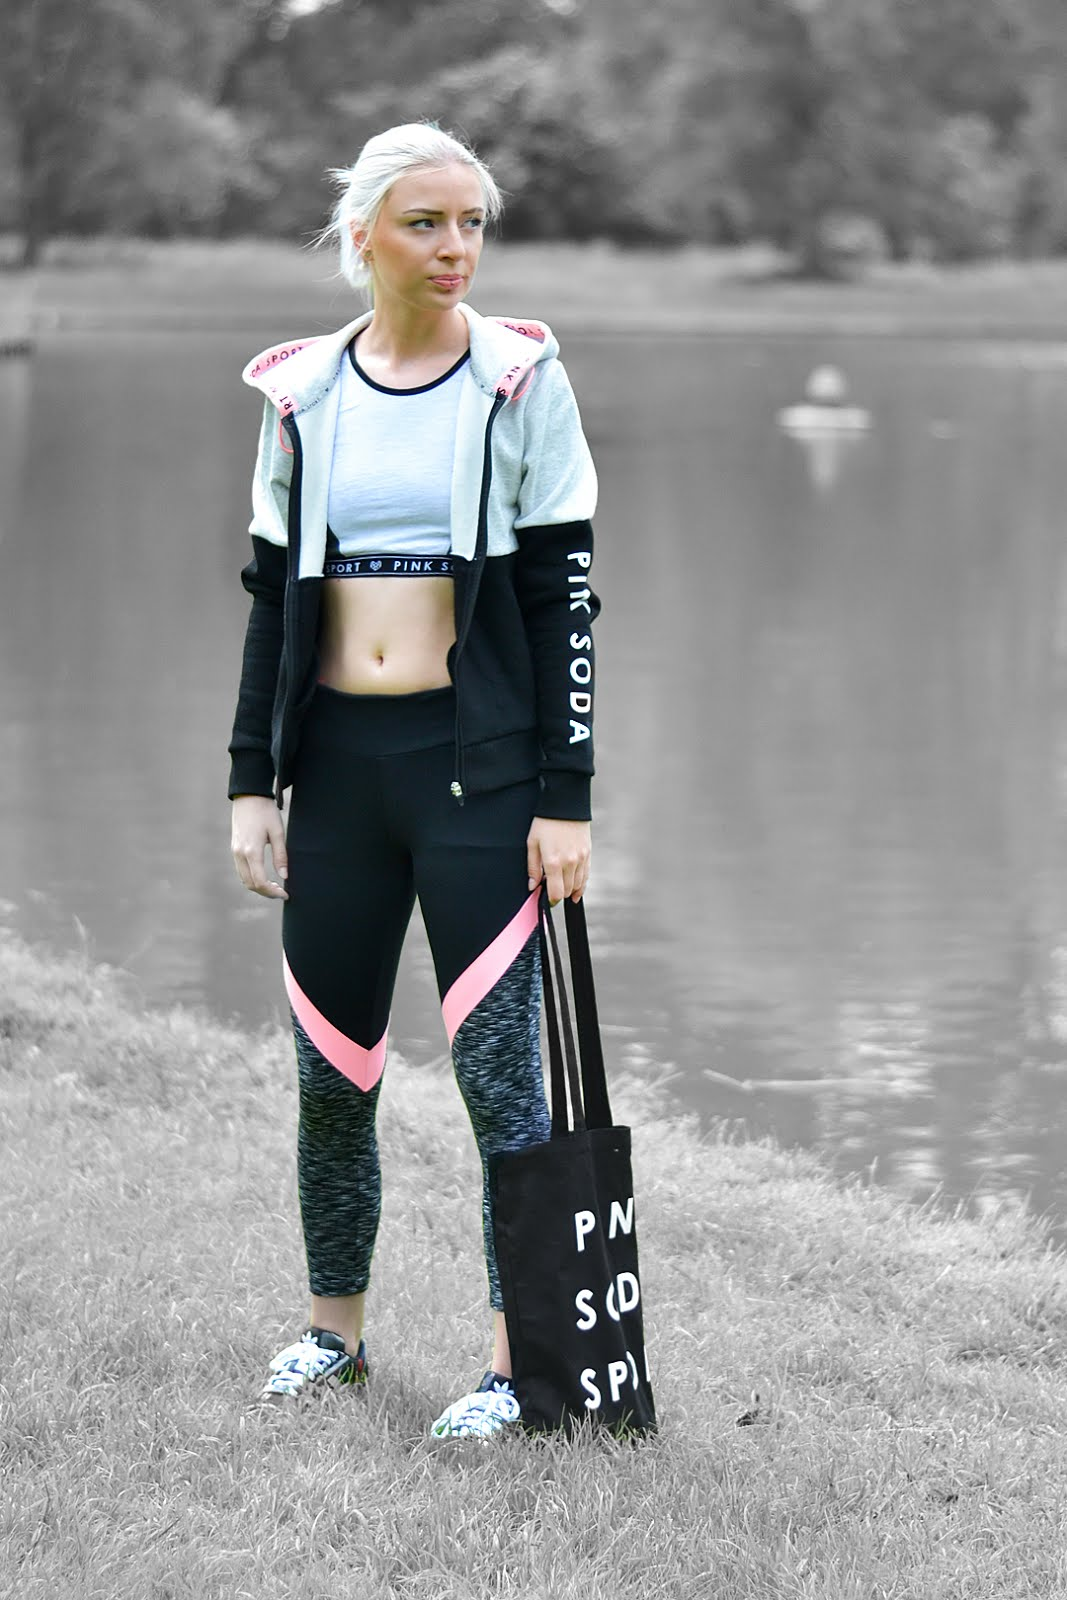 Pink soda sport, jd sports, workout outfit, beautiful, 2016, trends, belgian blogger, belgische mode blogger